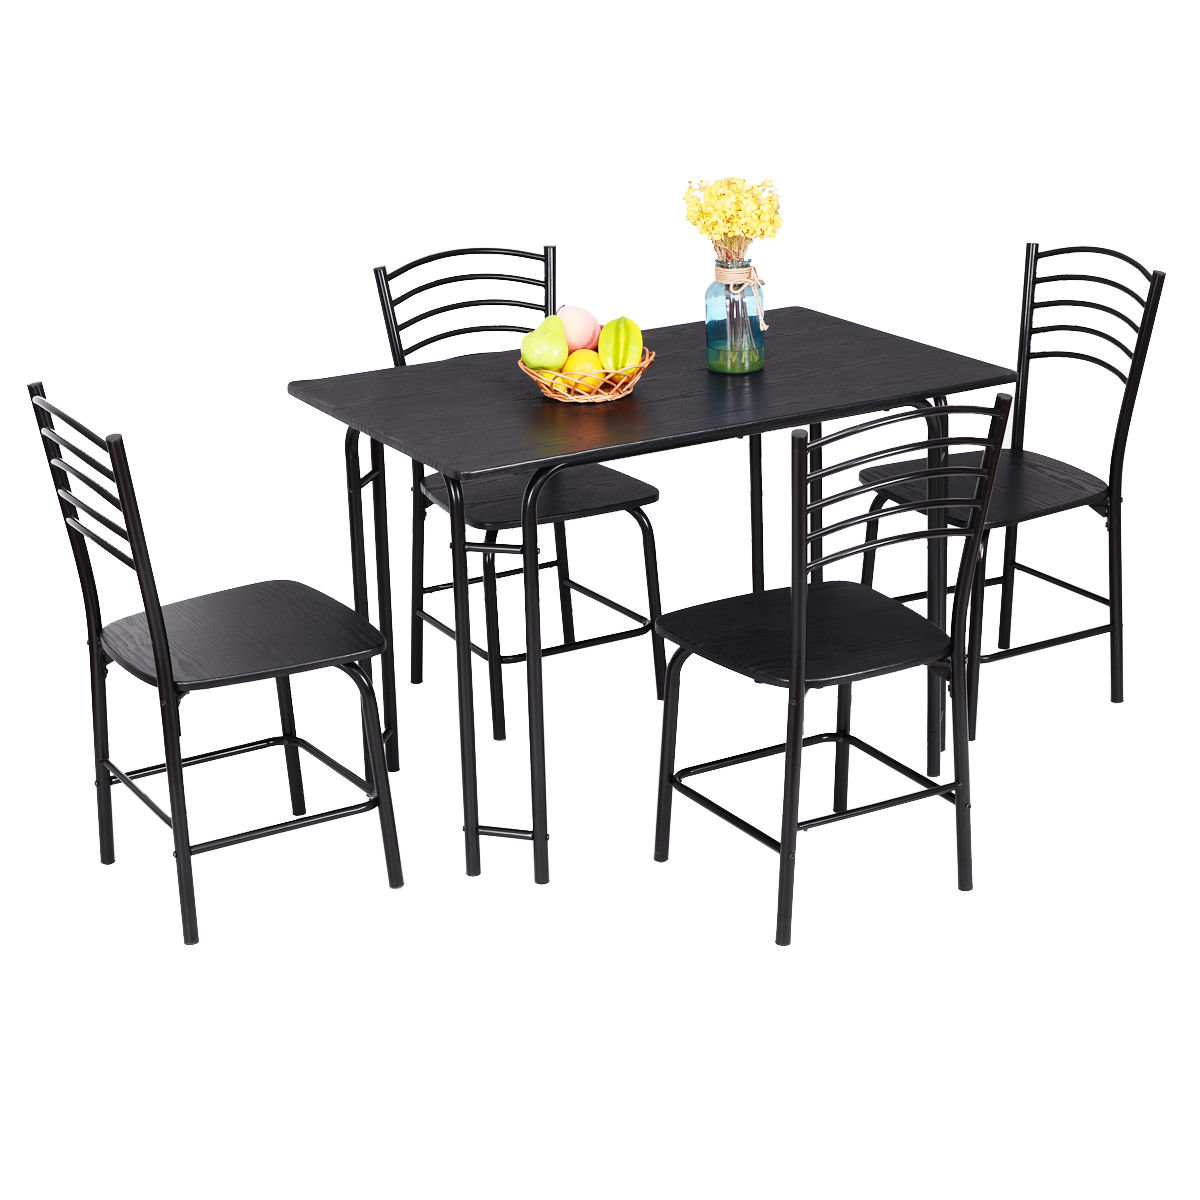 Ephraim 5 Piece Dining Set Intended For Newest Mulvey 5 Piece Dining Sets (View 6 of 20)